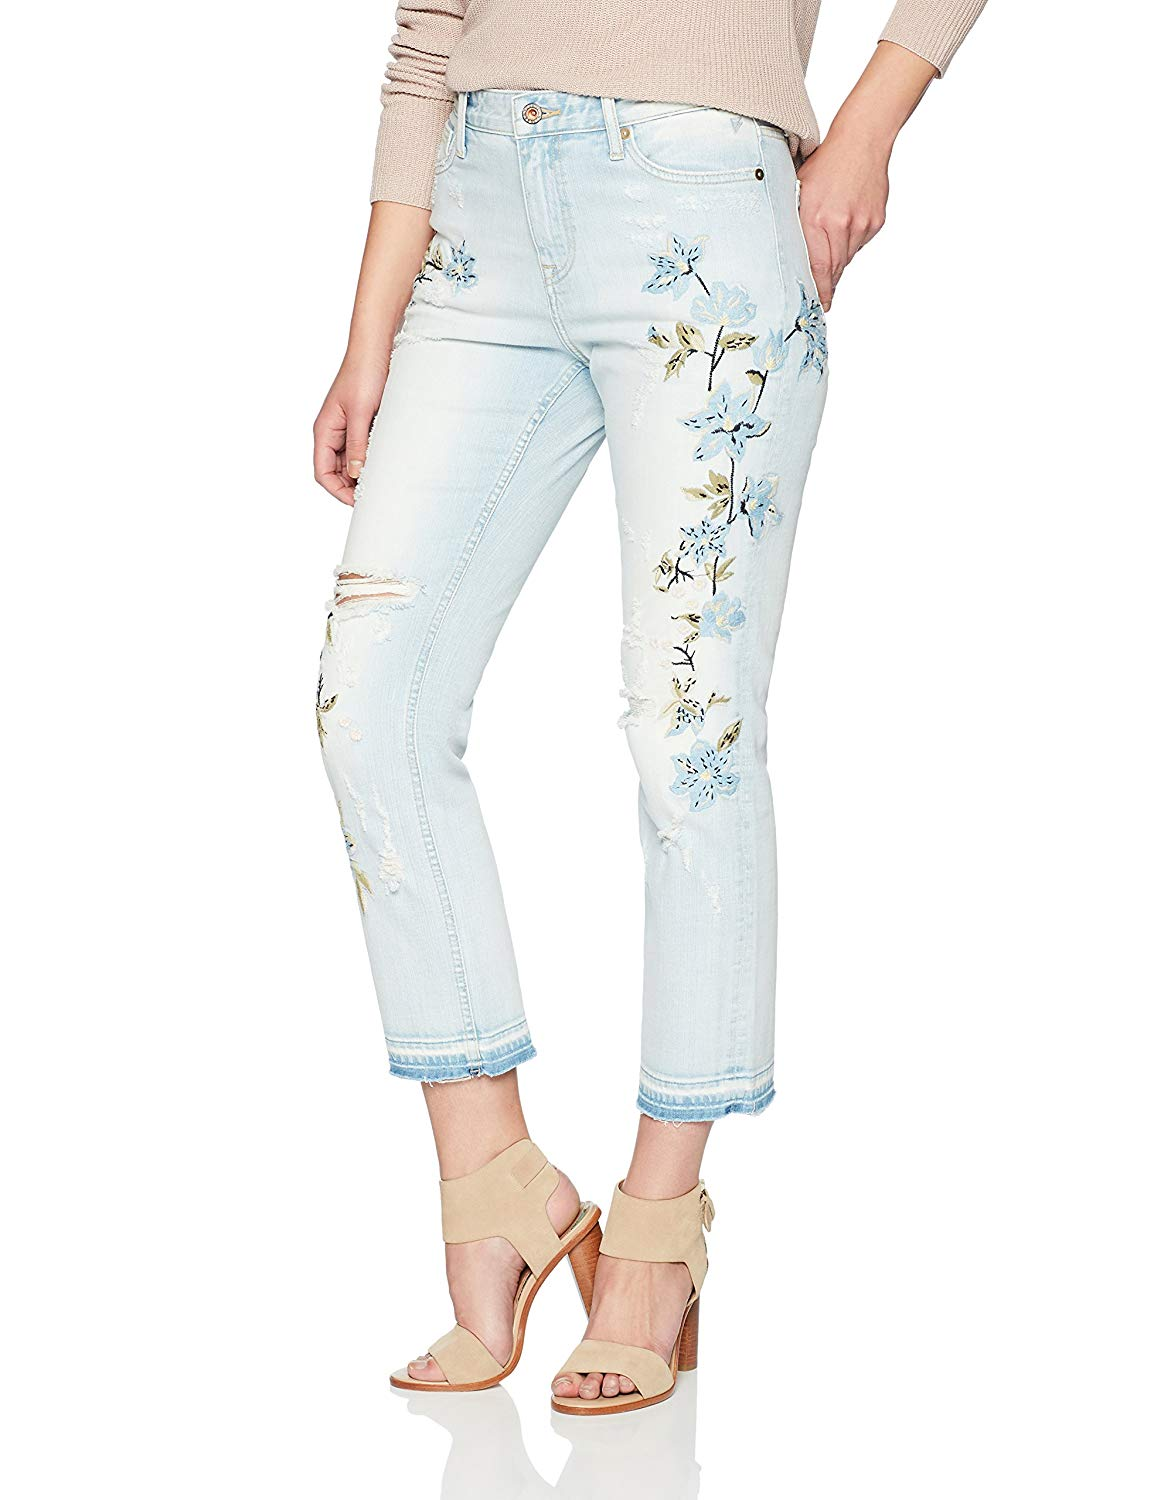 Denim Bloom Women's High Rise Cropped Jeans with Straight Leg and Embroidery